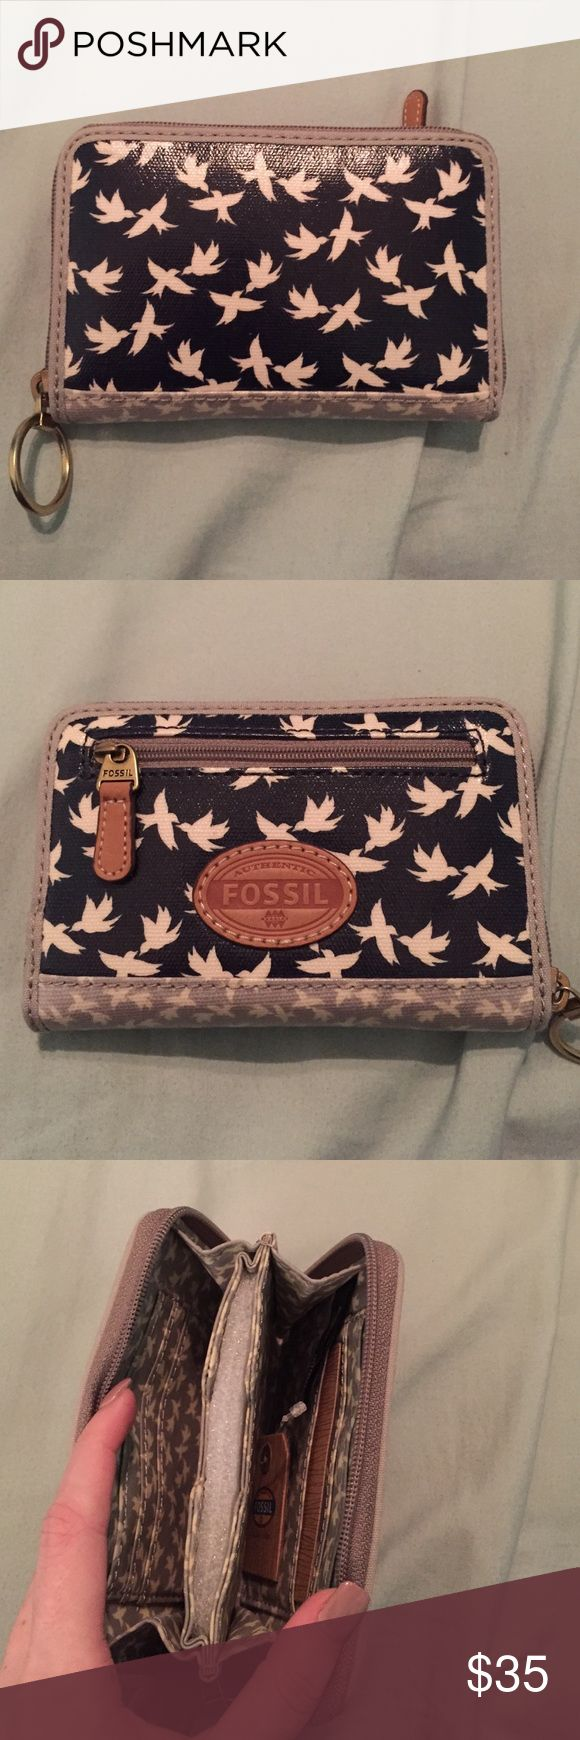 NWT Fossil Keyper Wallet NWT Fossil wallet! They don't make this collection anymore!! Super cute, never used before! No trades please Fossil Bags Wallets